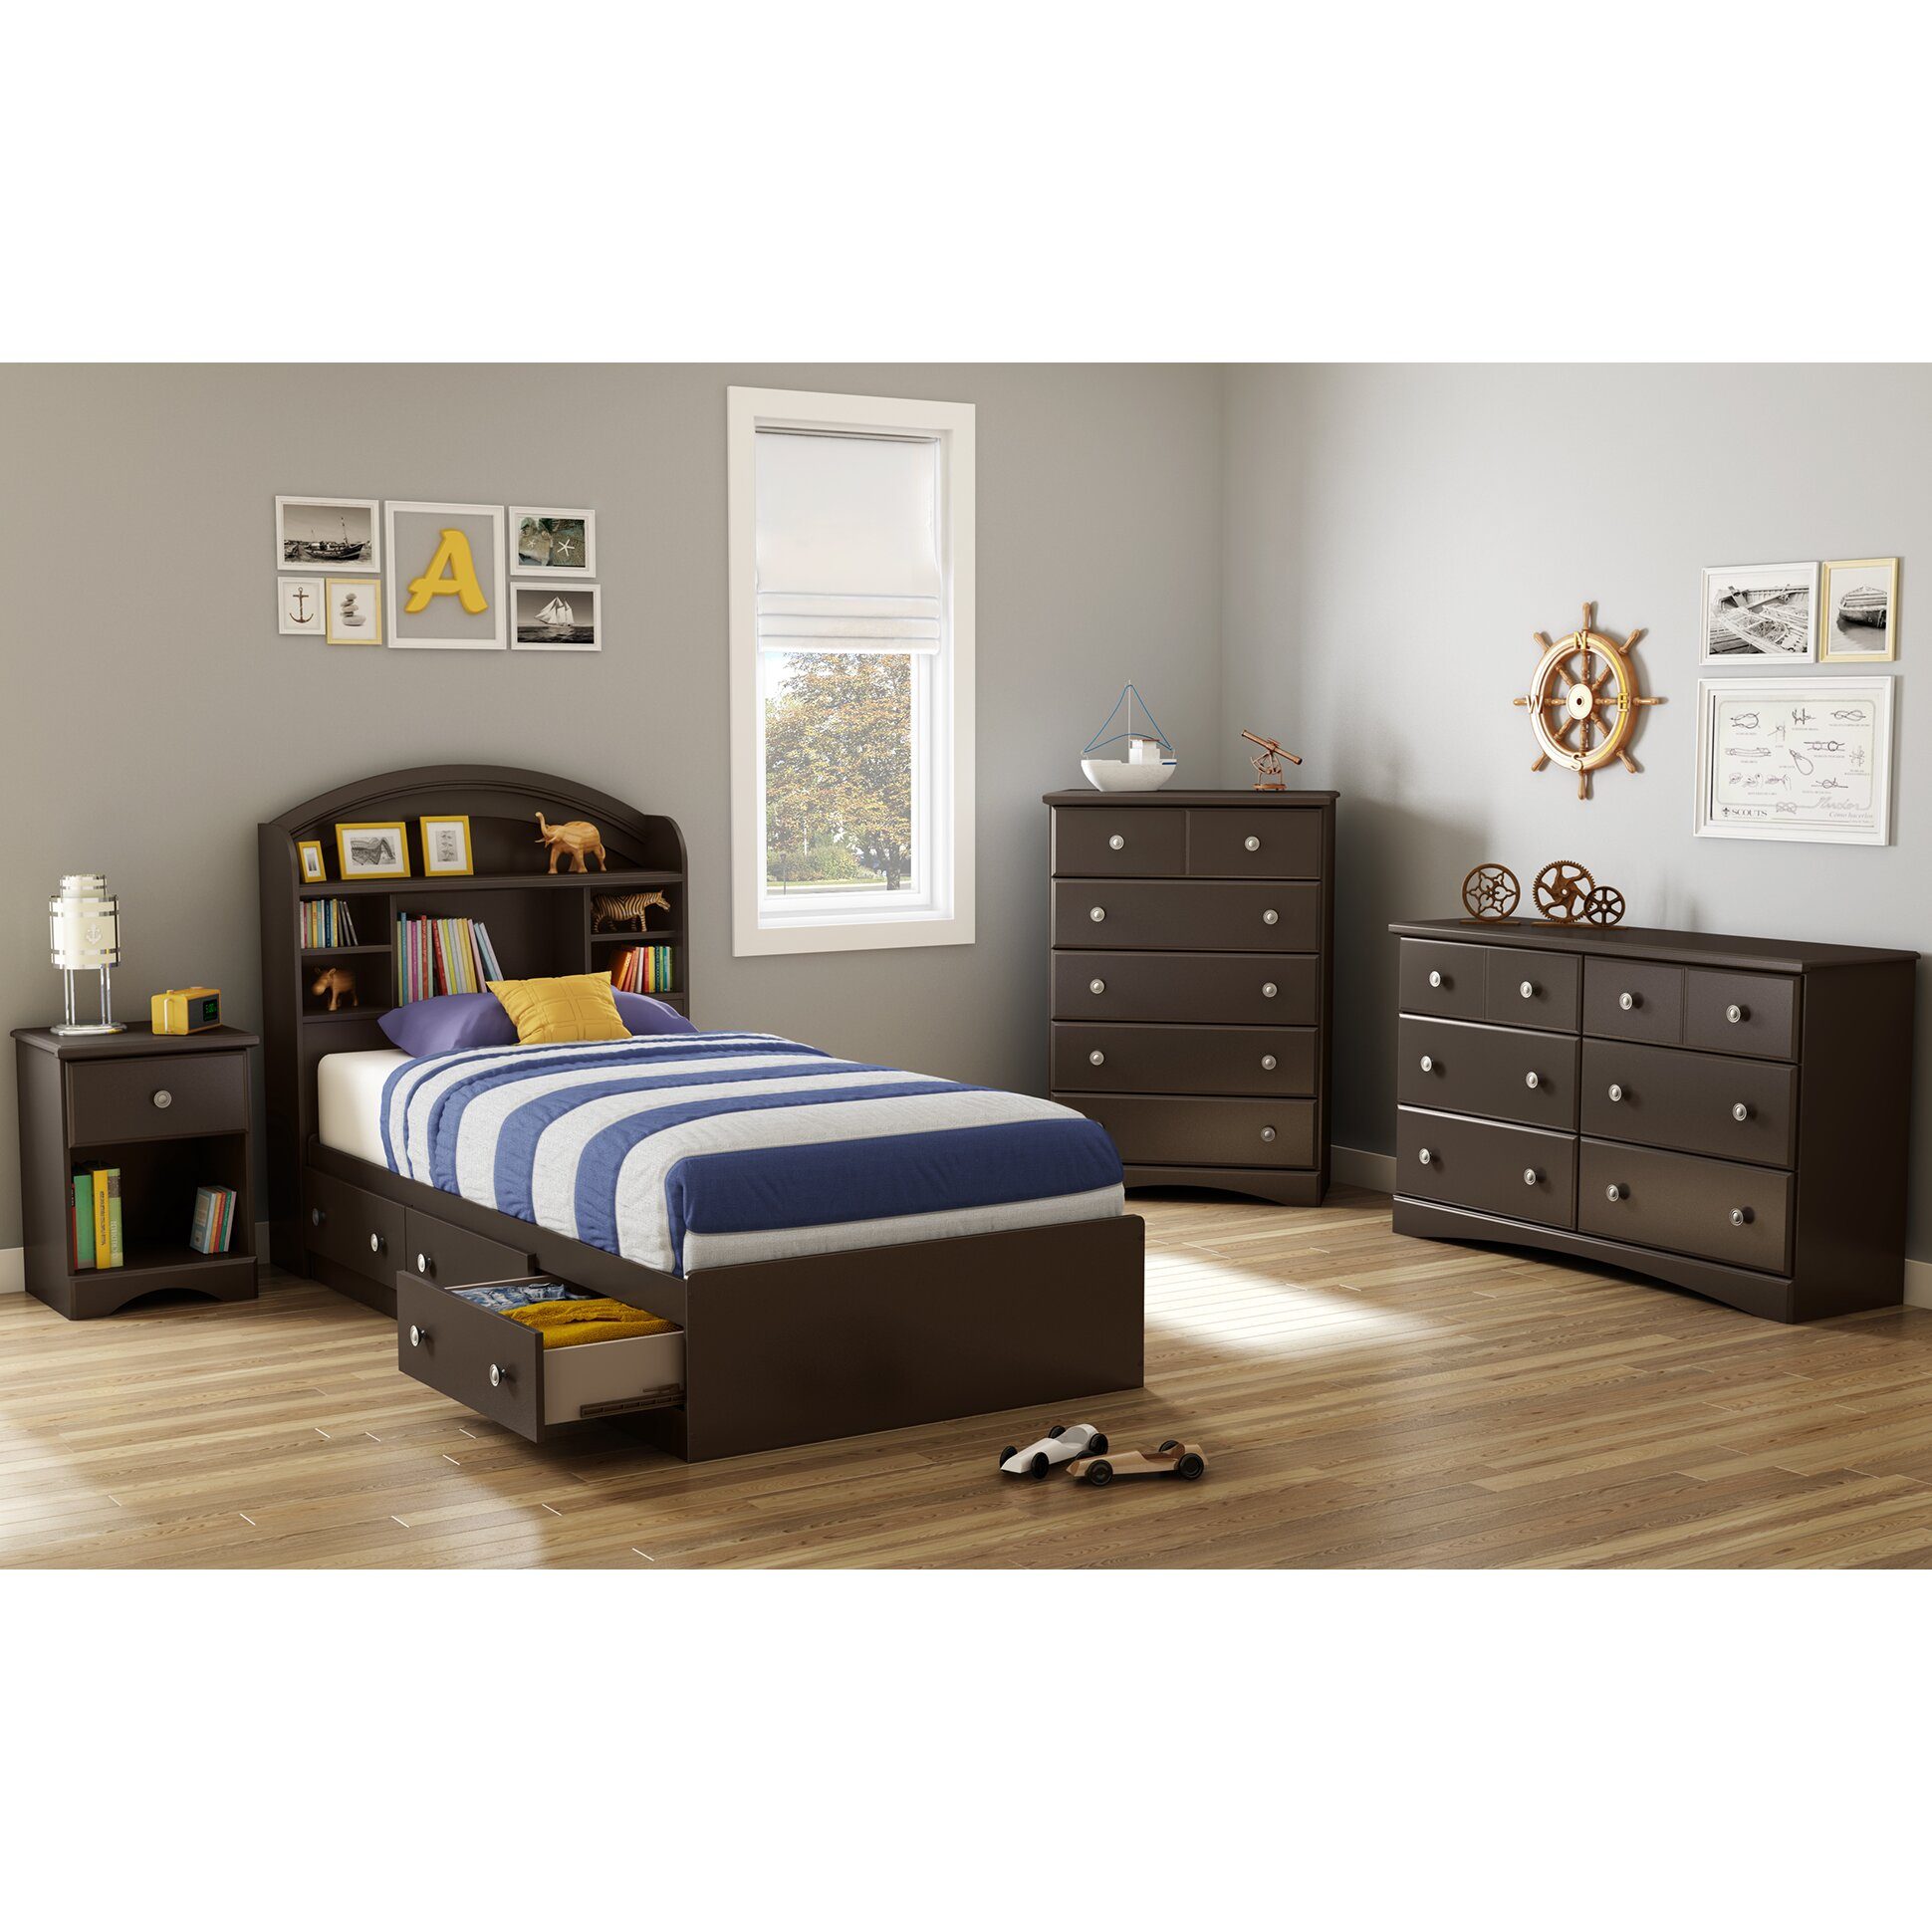 Now Pay Later Bedroom Furniture Kids Bedroom Sets Shop Sets For Boys And Girls Youll Love Wayfair